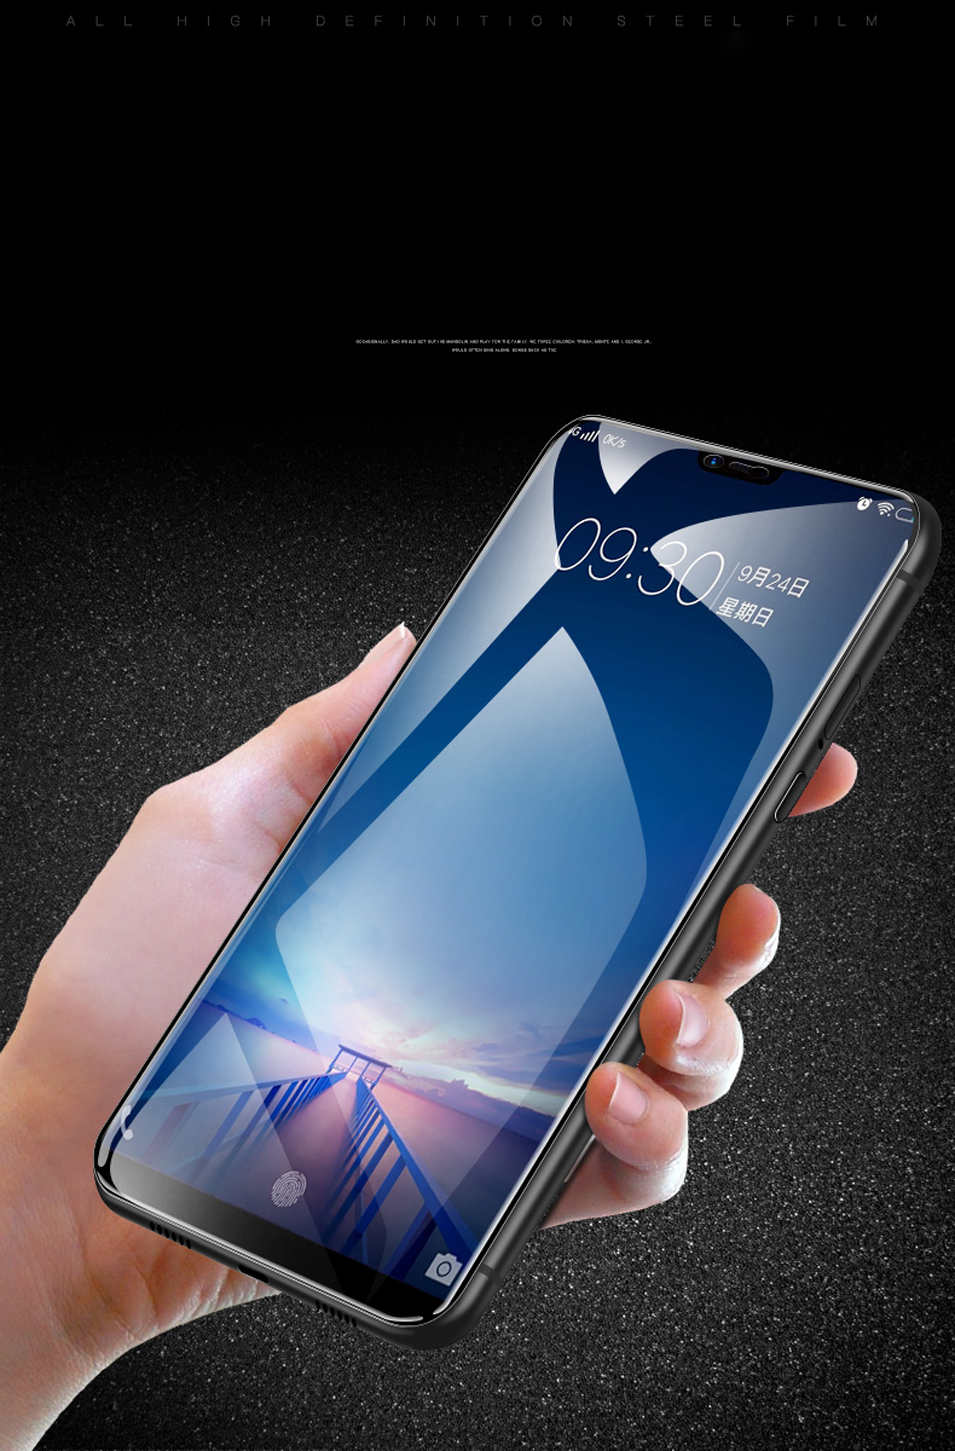 LECAYEE For Vivo V9 Youth Tempered Glass For Vivo V9 V7+ Y71 V7 Plus V9 Youth Full Cover Edge Safety Screen Protective Glass (9)